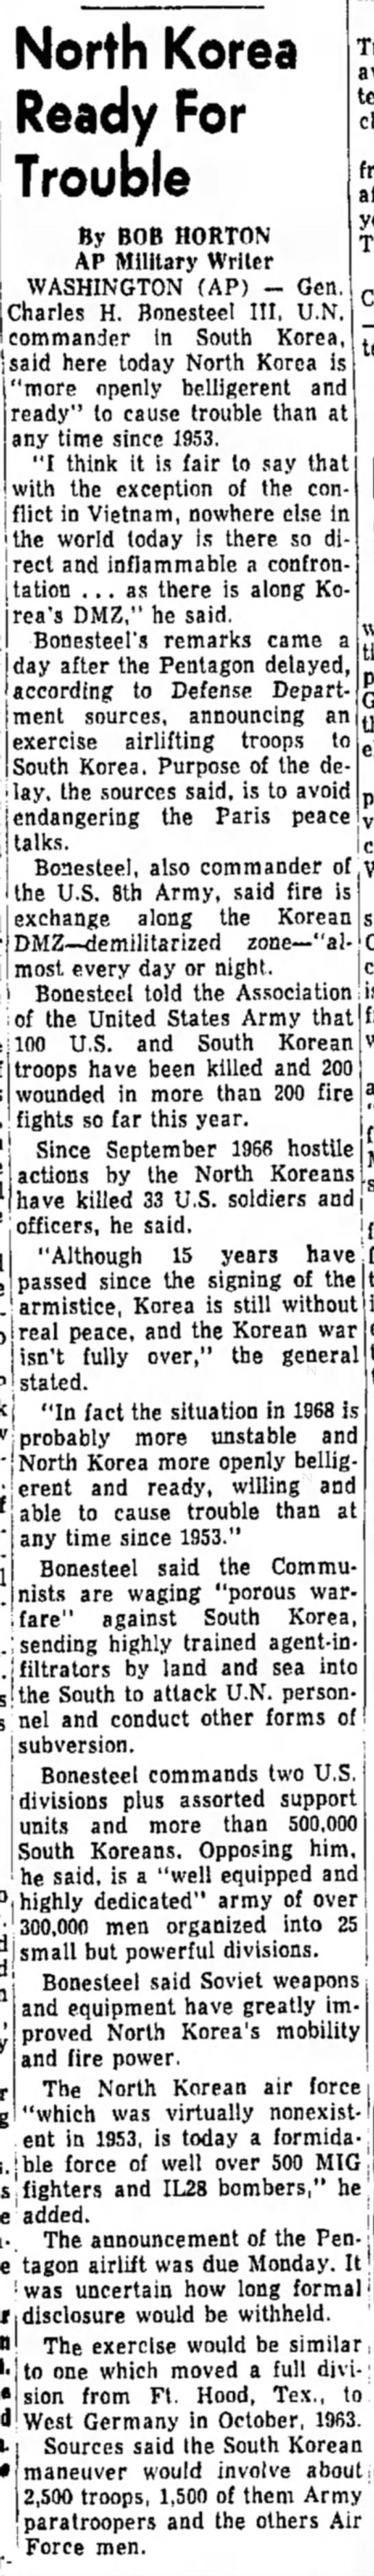 The Daily Republic (Mitchell, South Dakota) 29 October 1968 Page 3 - North Korea Ready For Trouble By BOB HORTON AP...